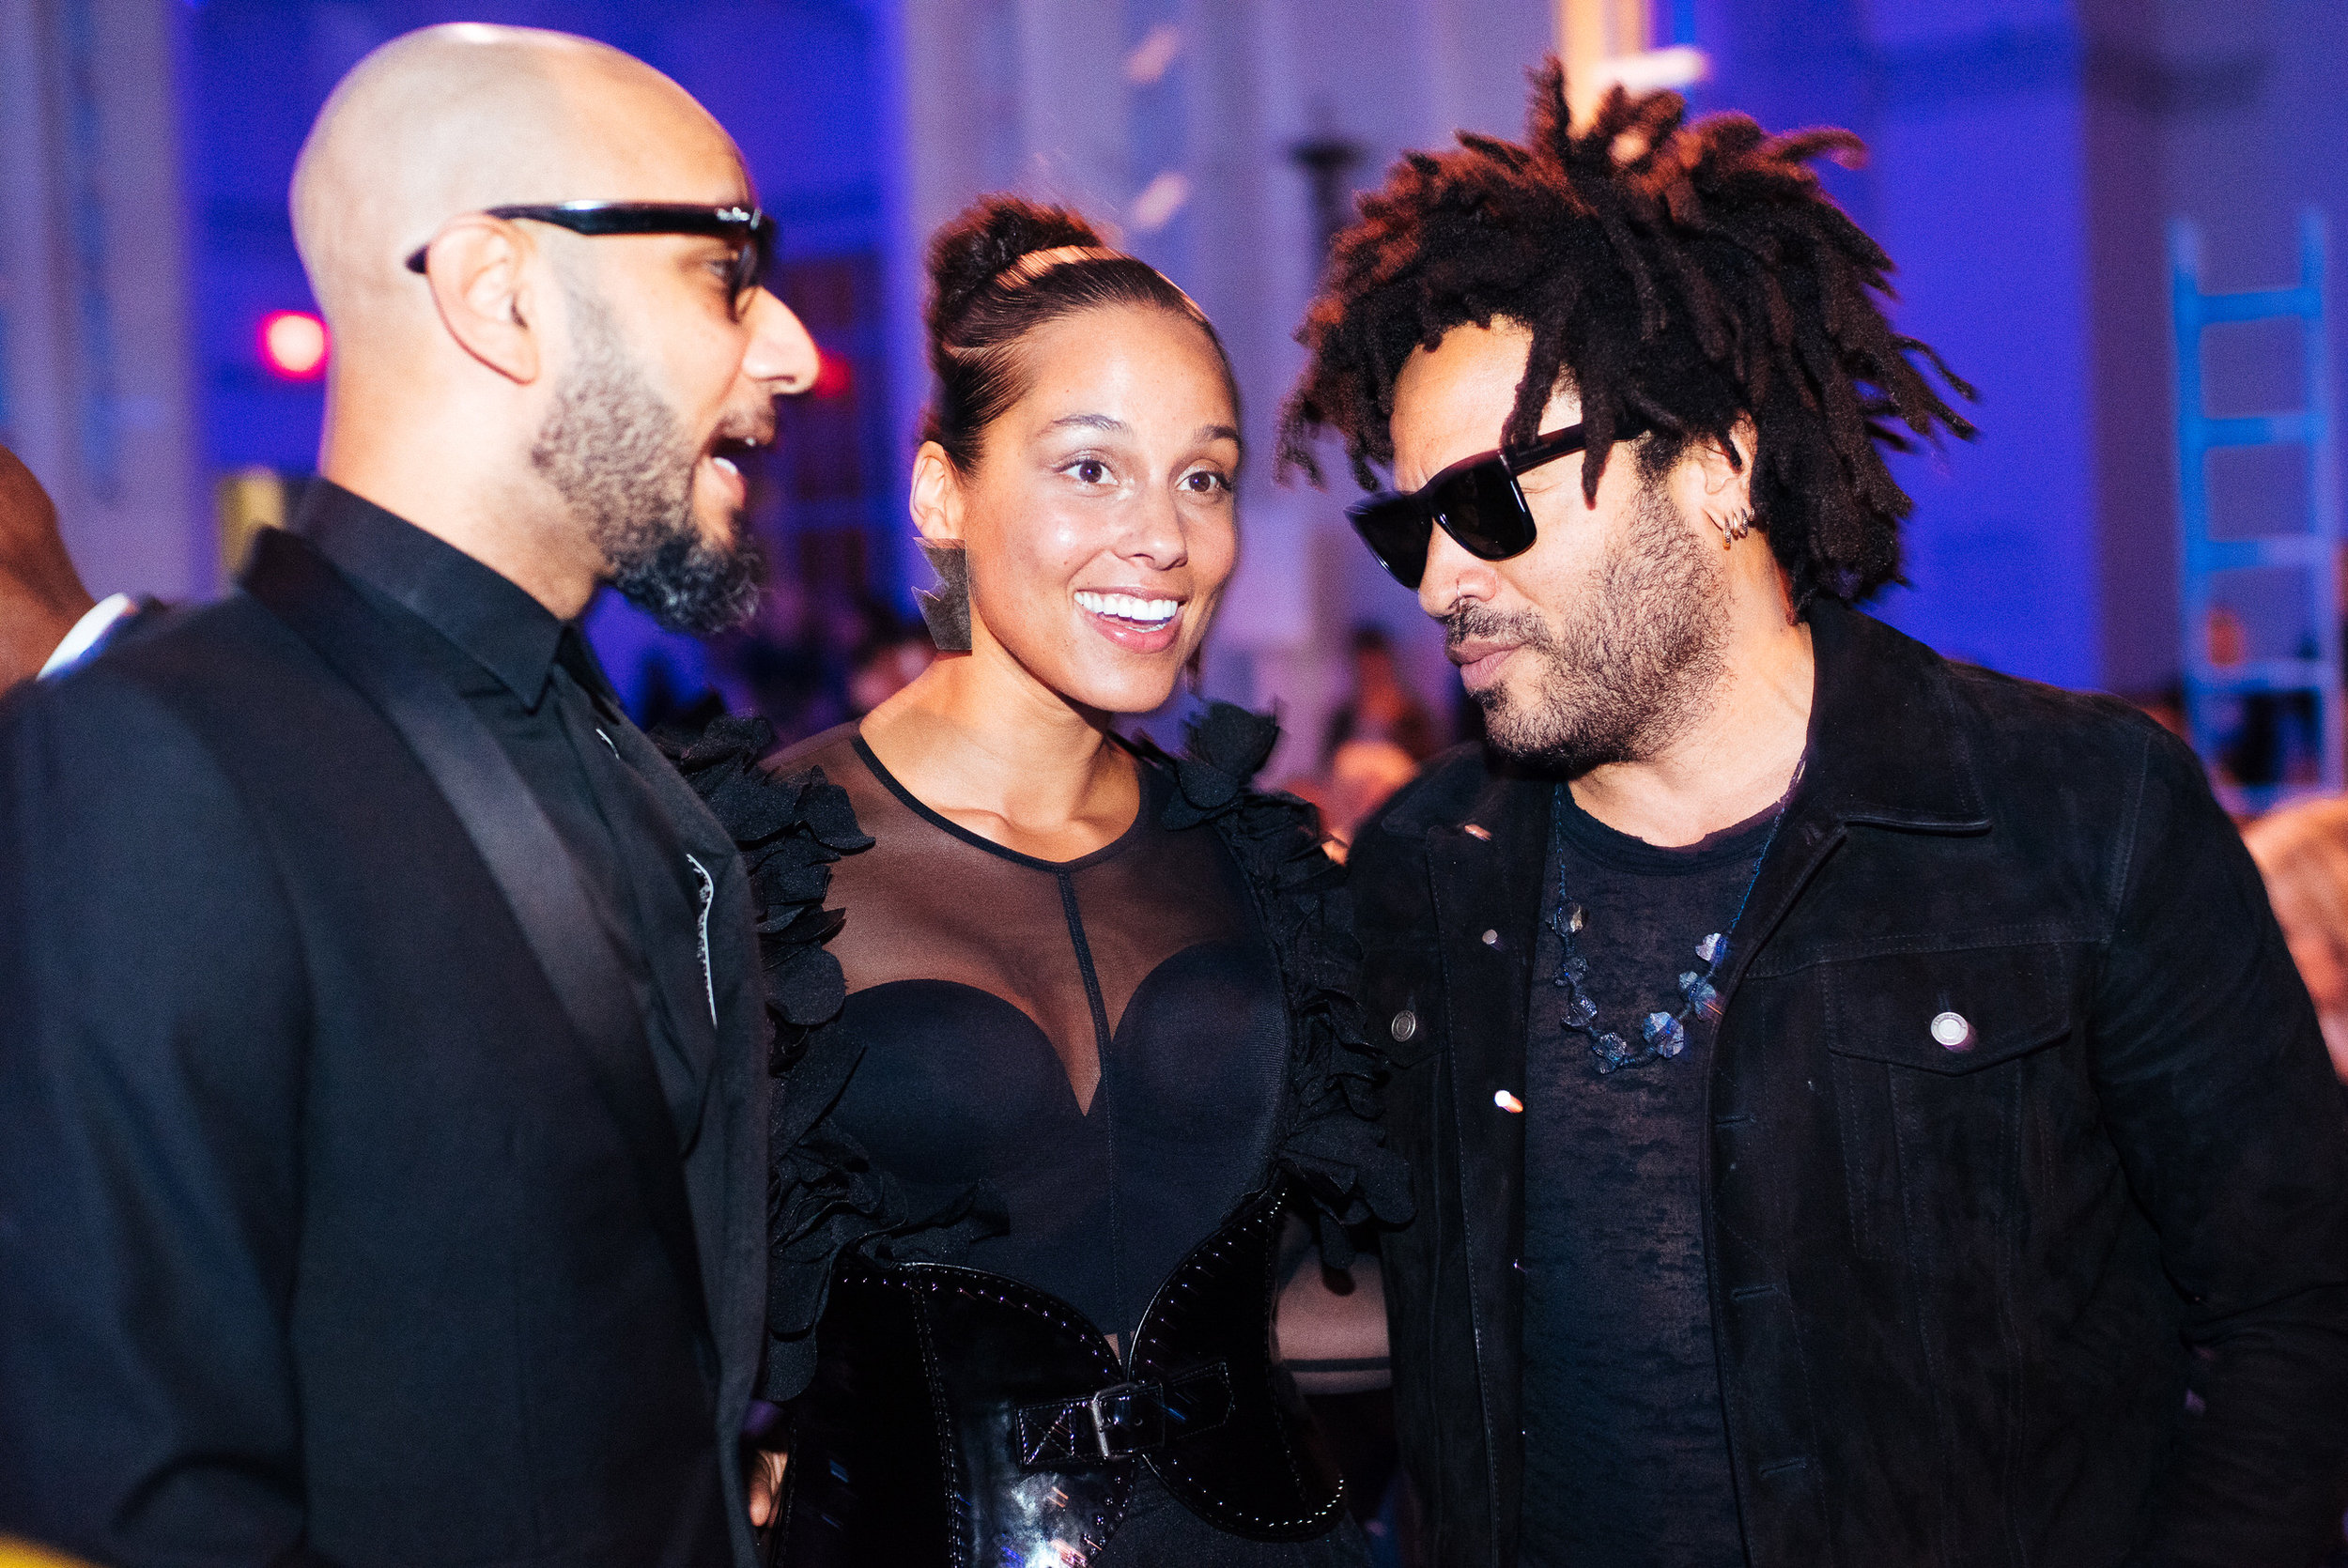 The Brooklyn Artists Ball at Brooklyn Museum 2017. Swizz Beats, Alicia Keys and Lenny Kravitz